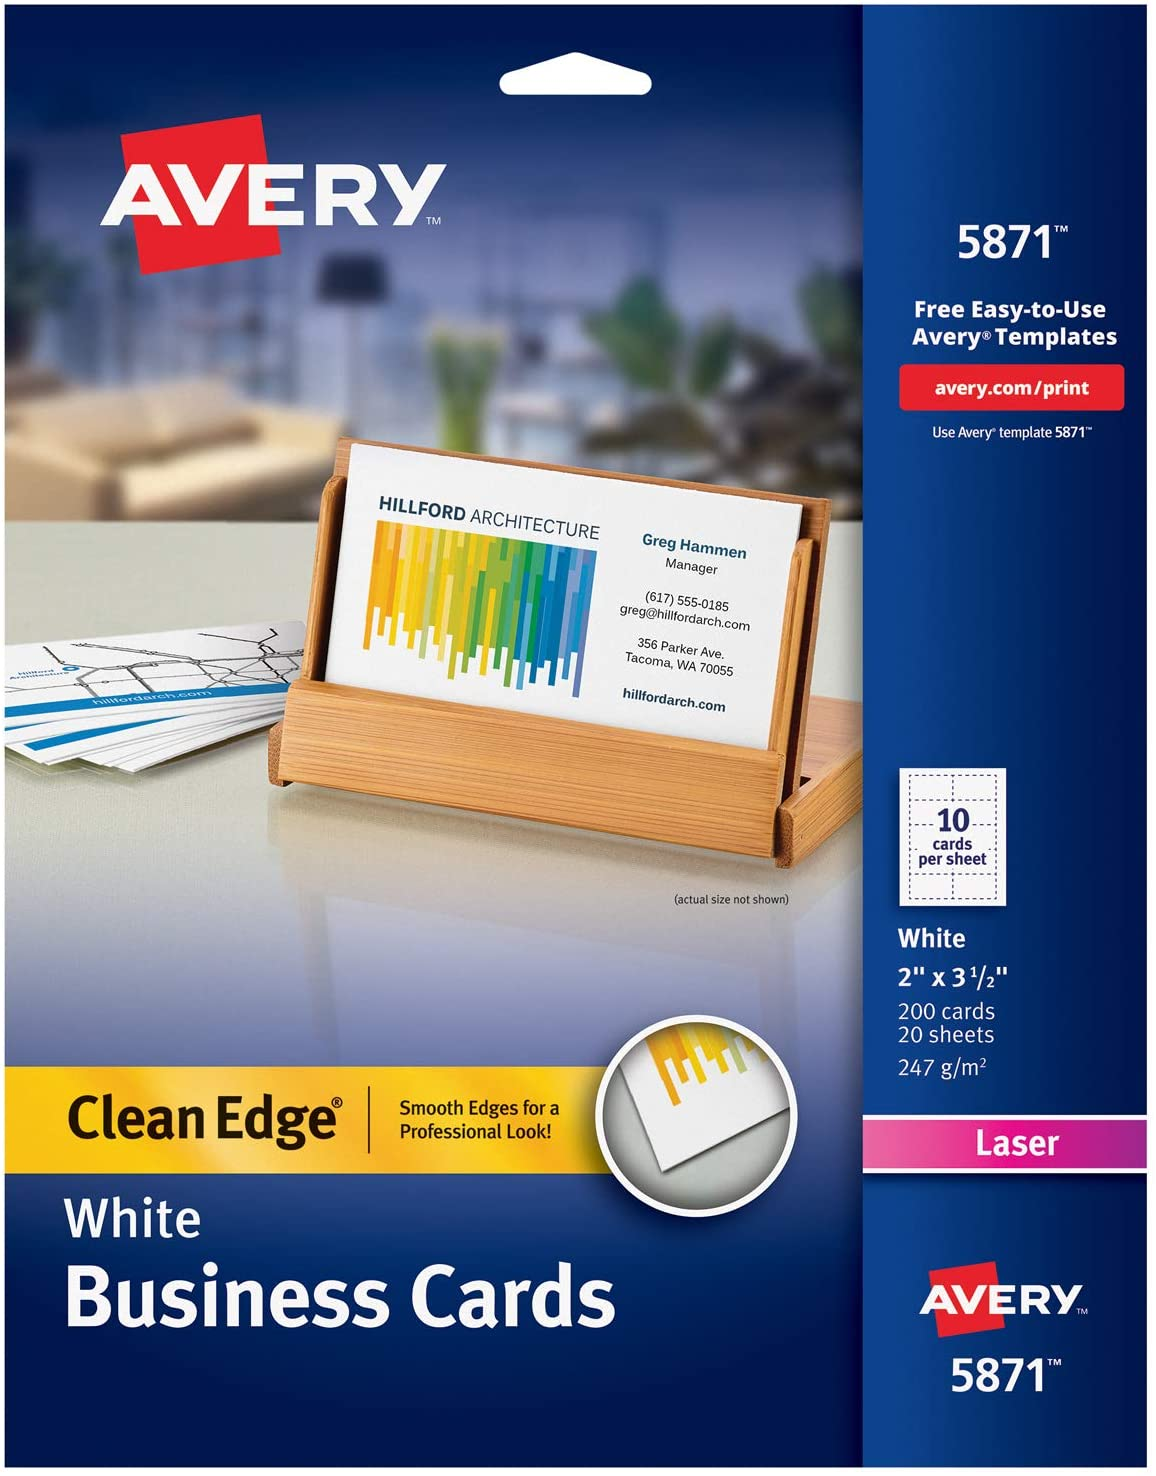 Avery Printable Business Cards, Laser Printers, 200 Cards, 2 x 3.5, Clean Edge (5871) : Business Card Stock : Office Products